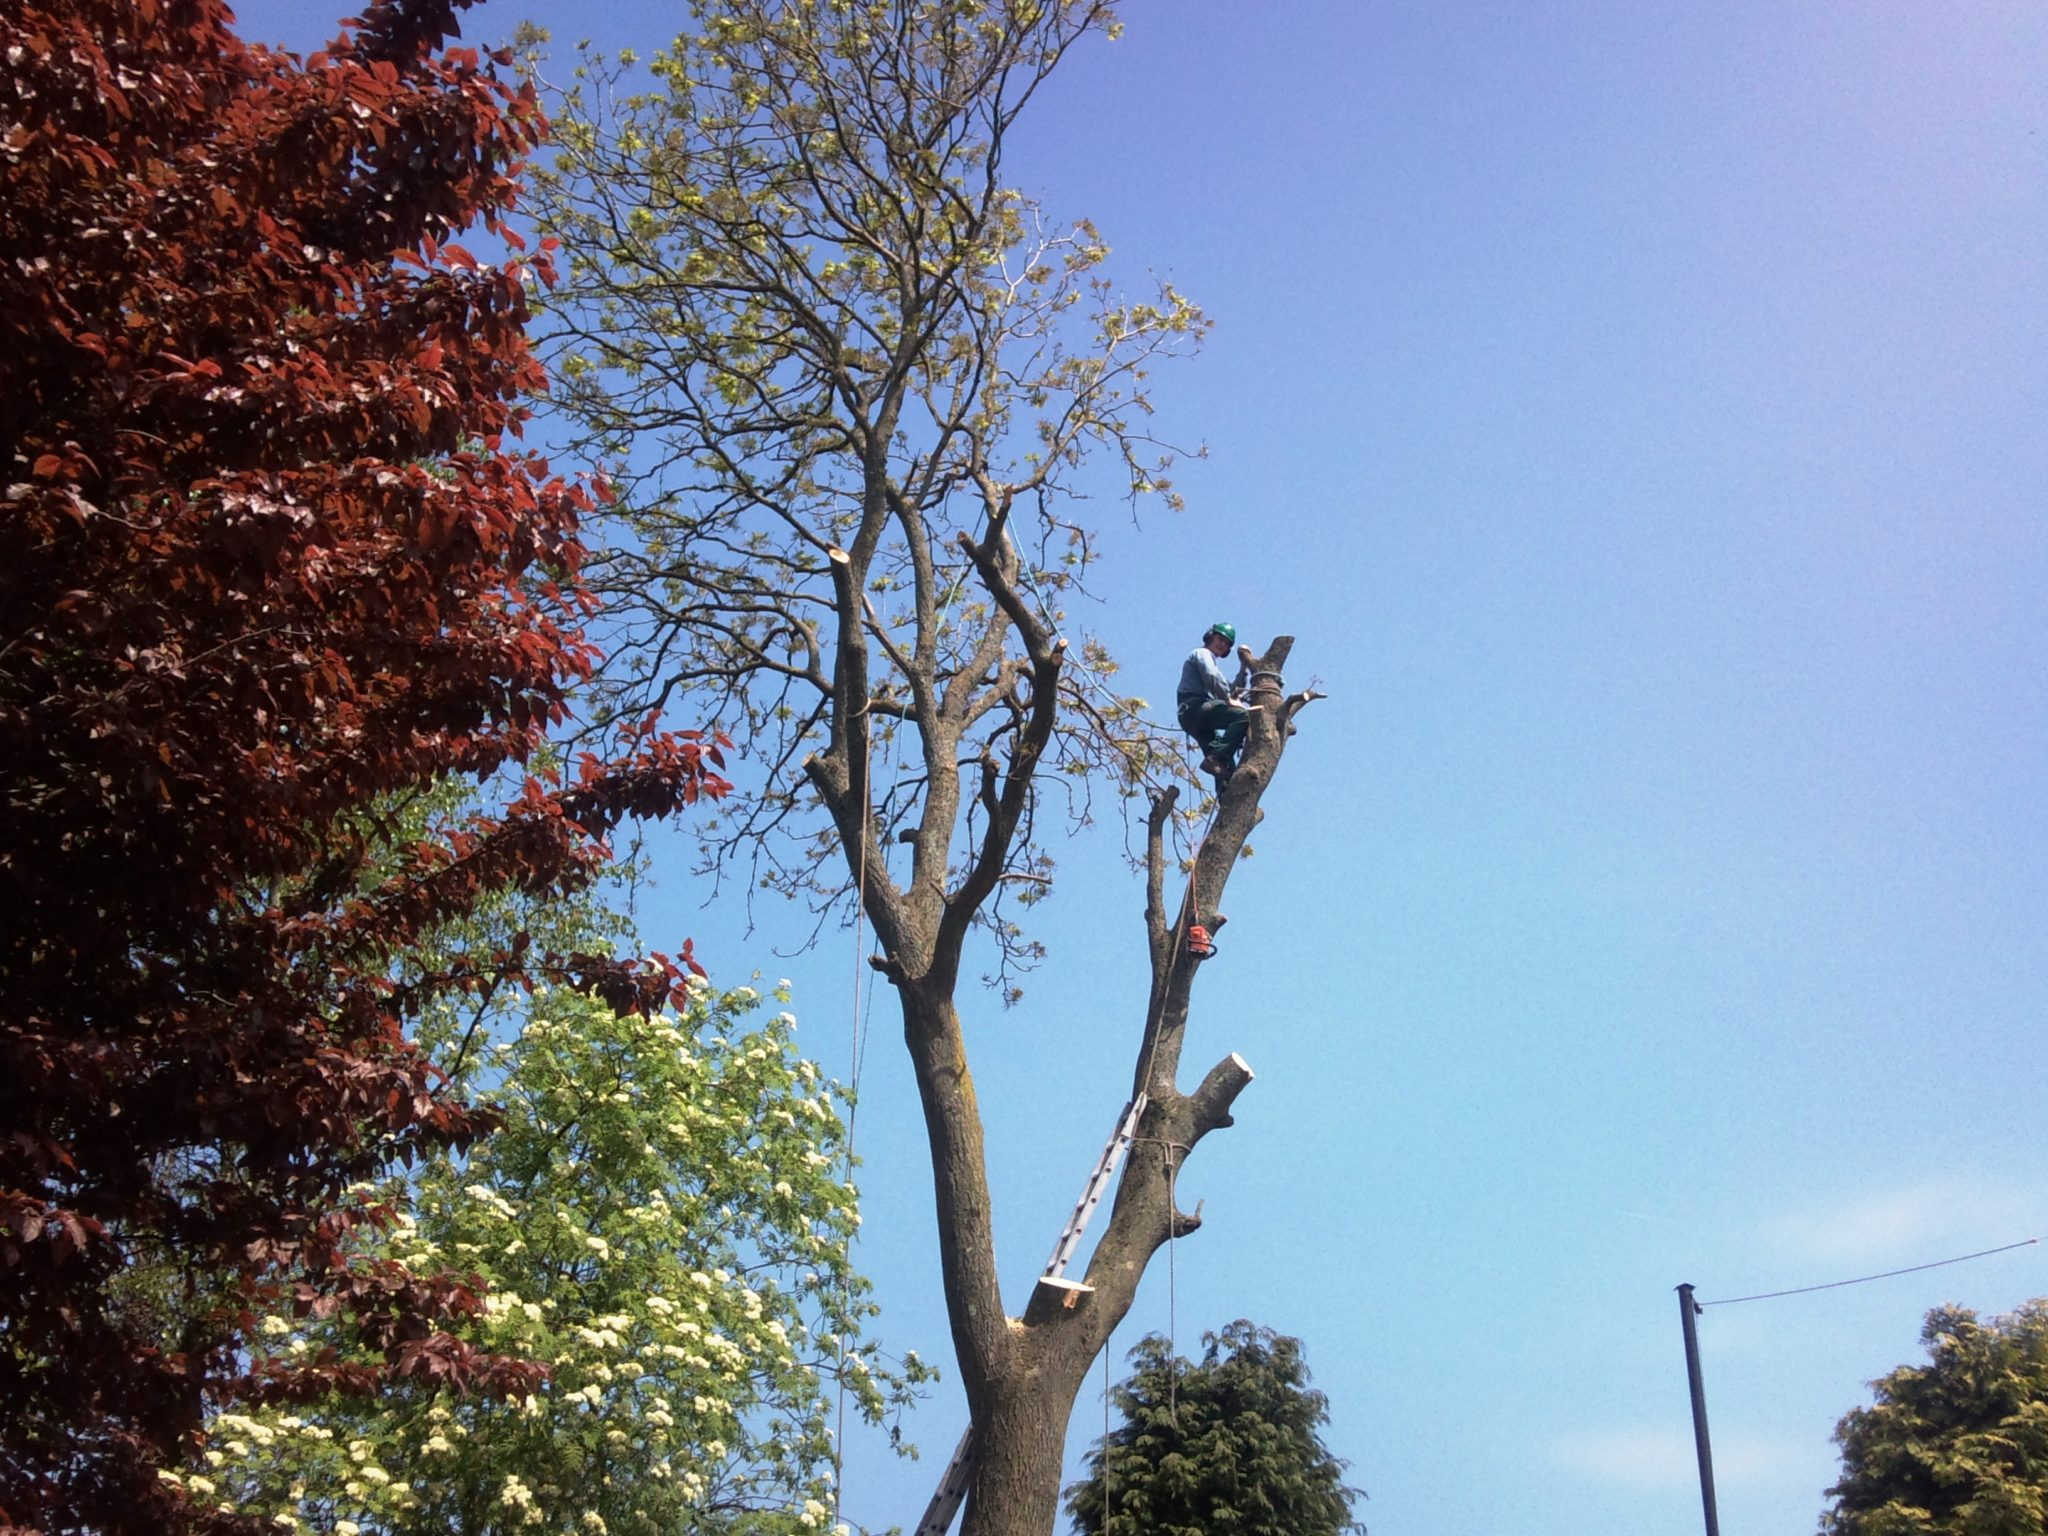 Tree Surgeon Chepstow Best Tree Surgery Chepstow Html